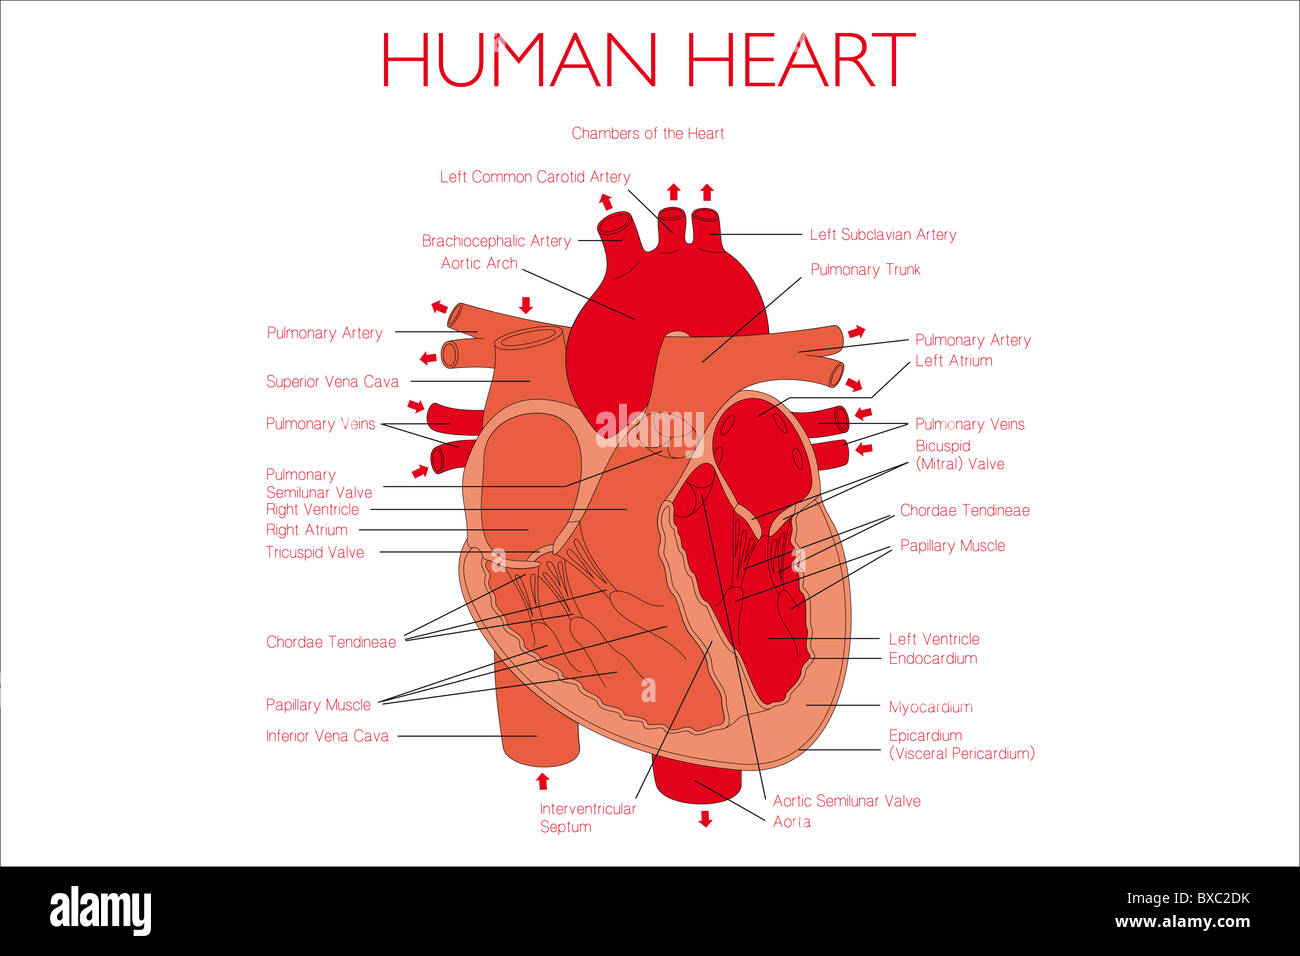 Human heart illustration with descriptions Stock Photo